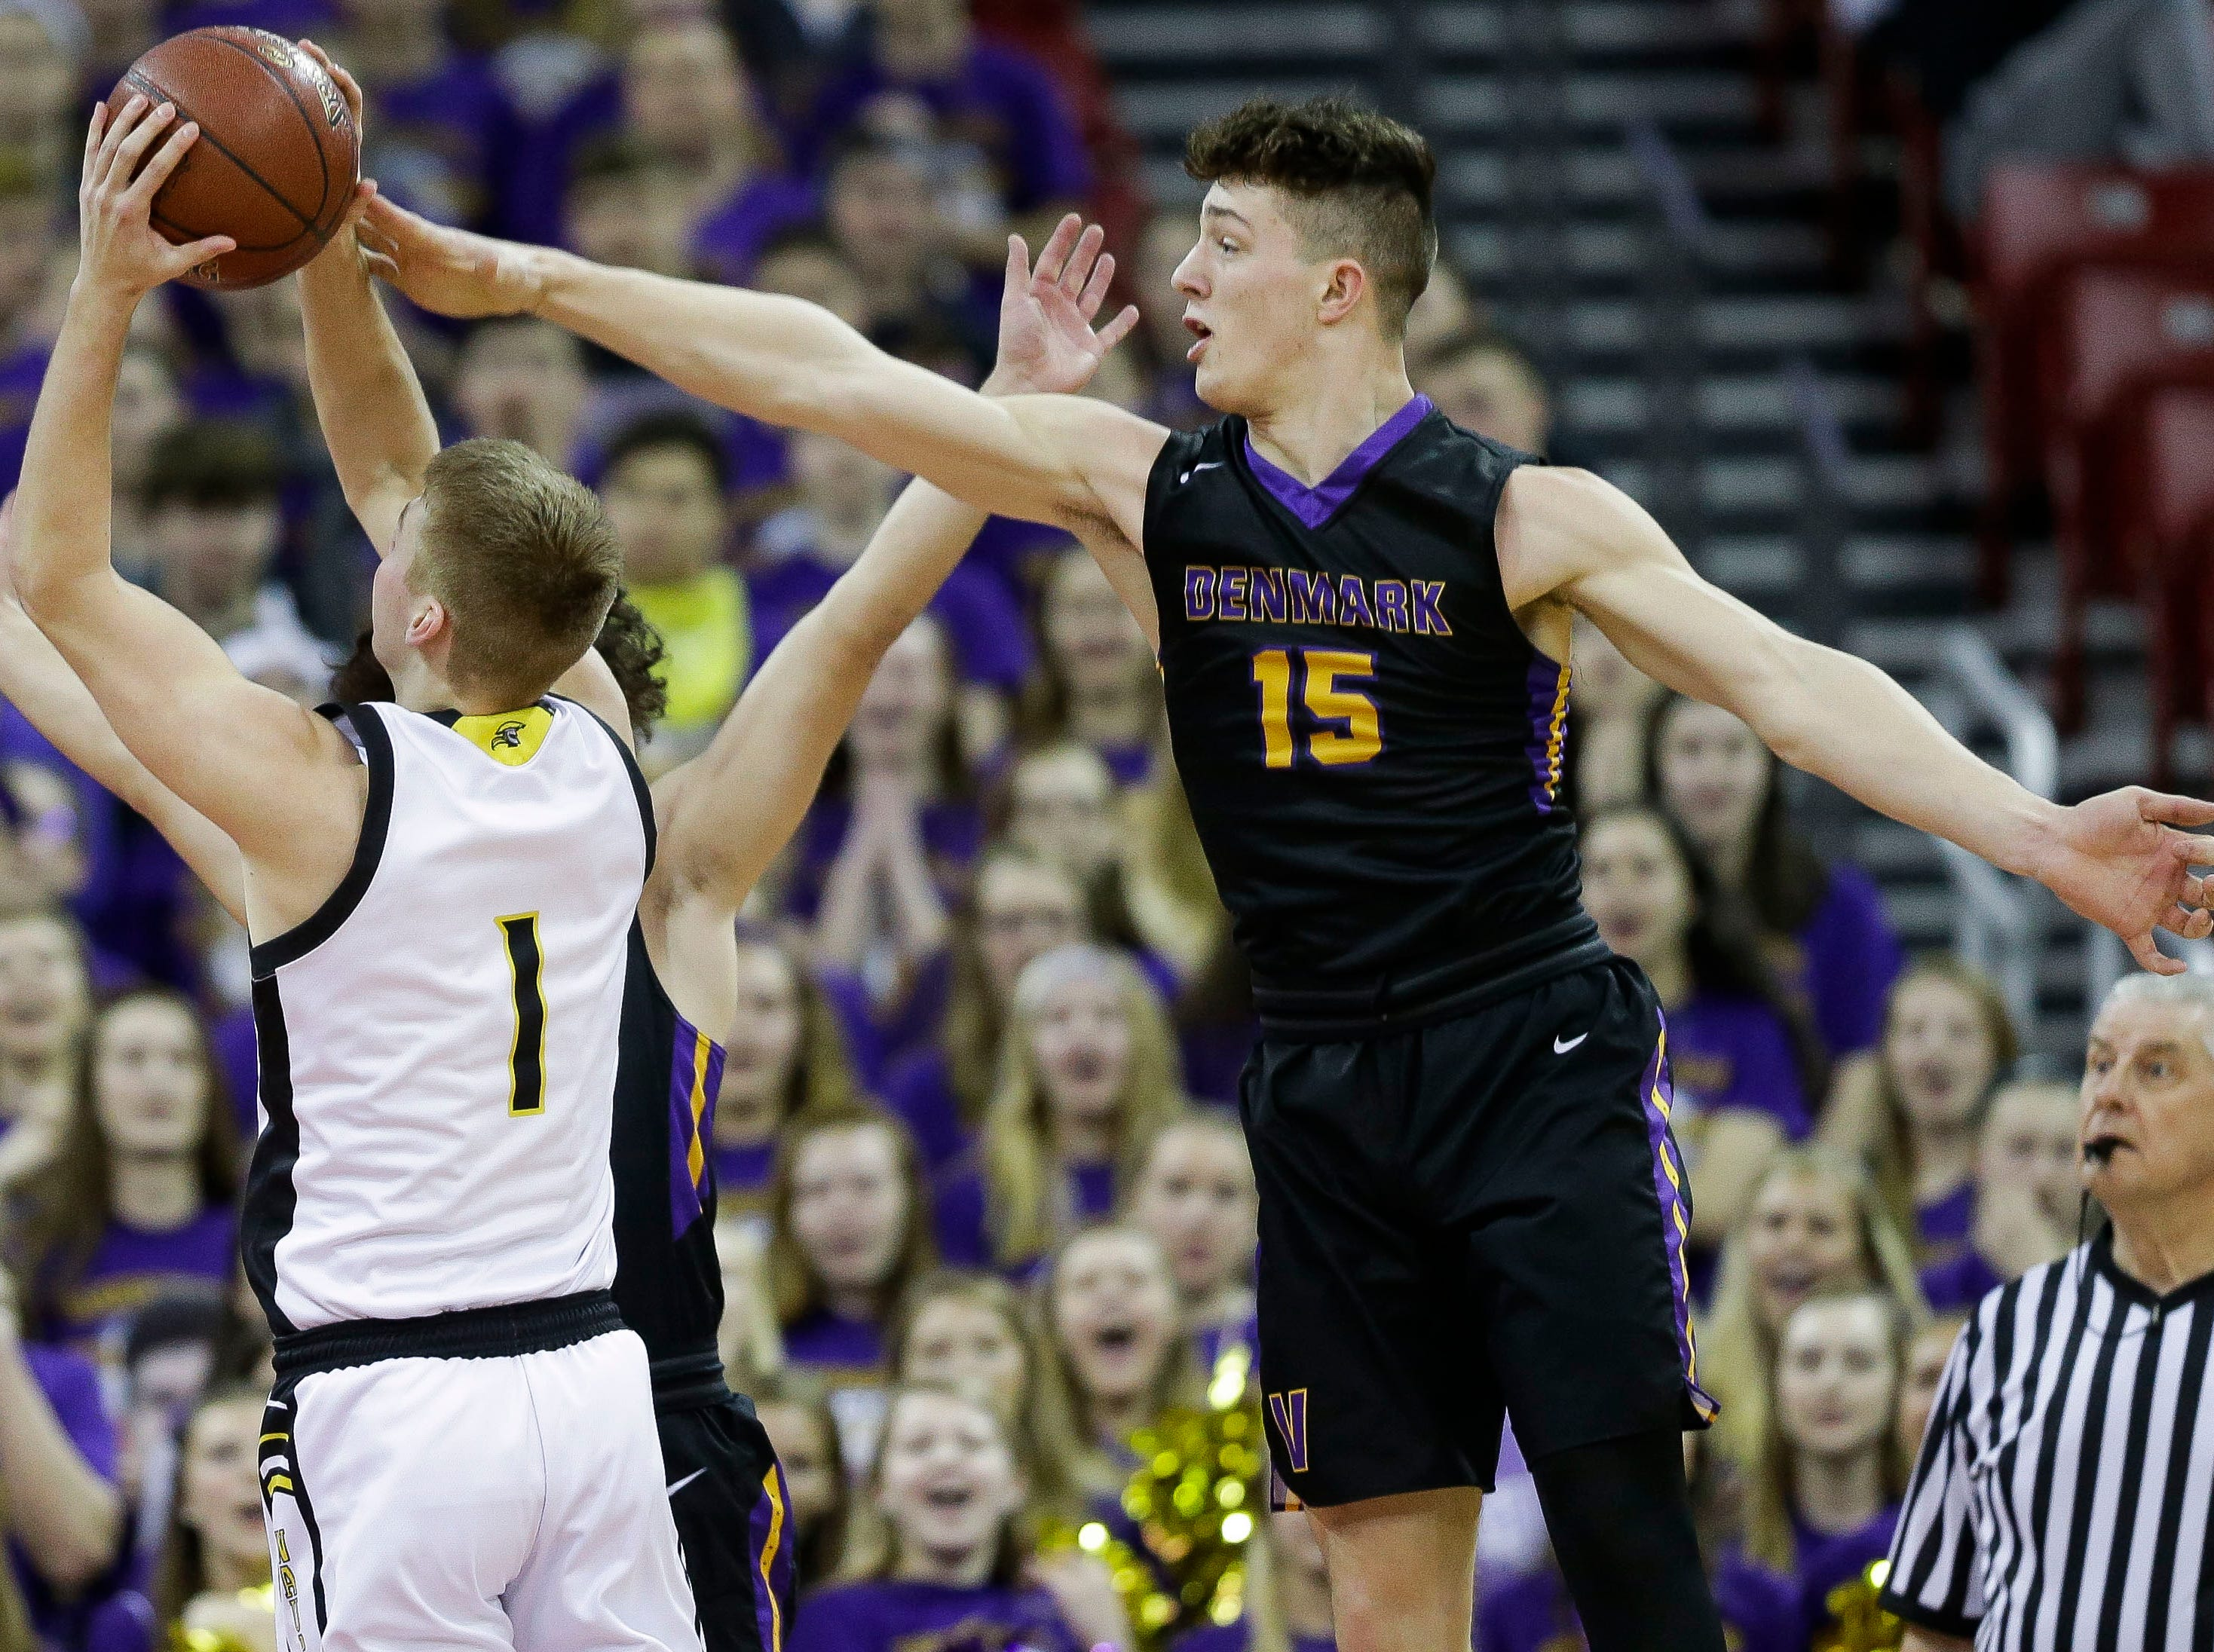 Denmark High School's Zane Short (15) contests a shot by Waupun High School's Marcus Domask (1) in a Division 3 boys basketball state semifinal on Thursday, March 14, 2019, at the Kohl Center in Madison, Wis.